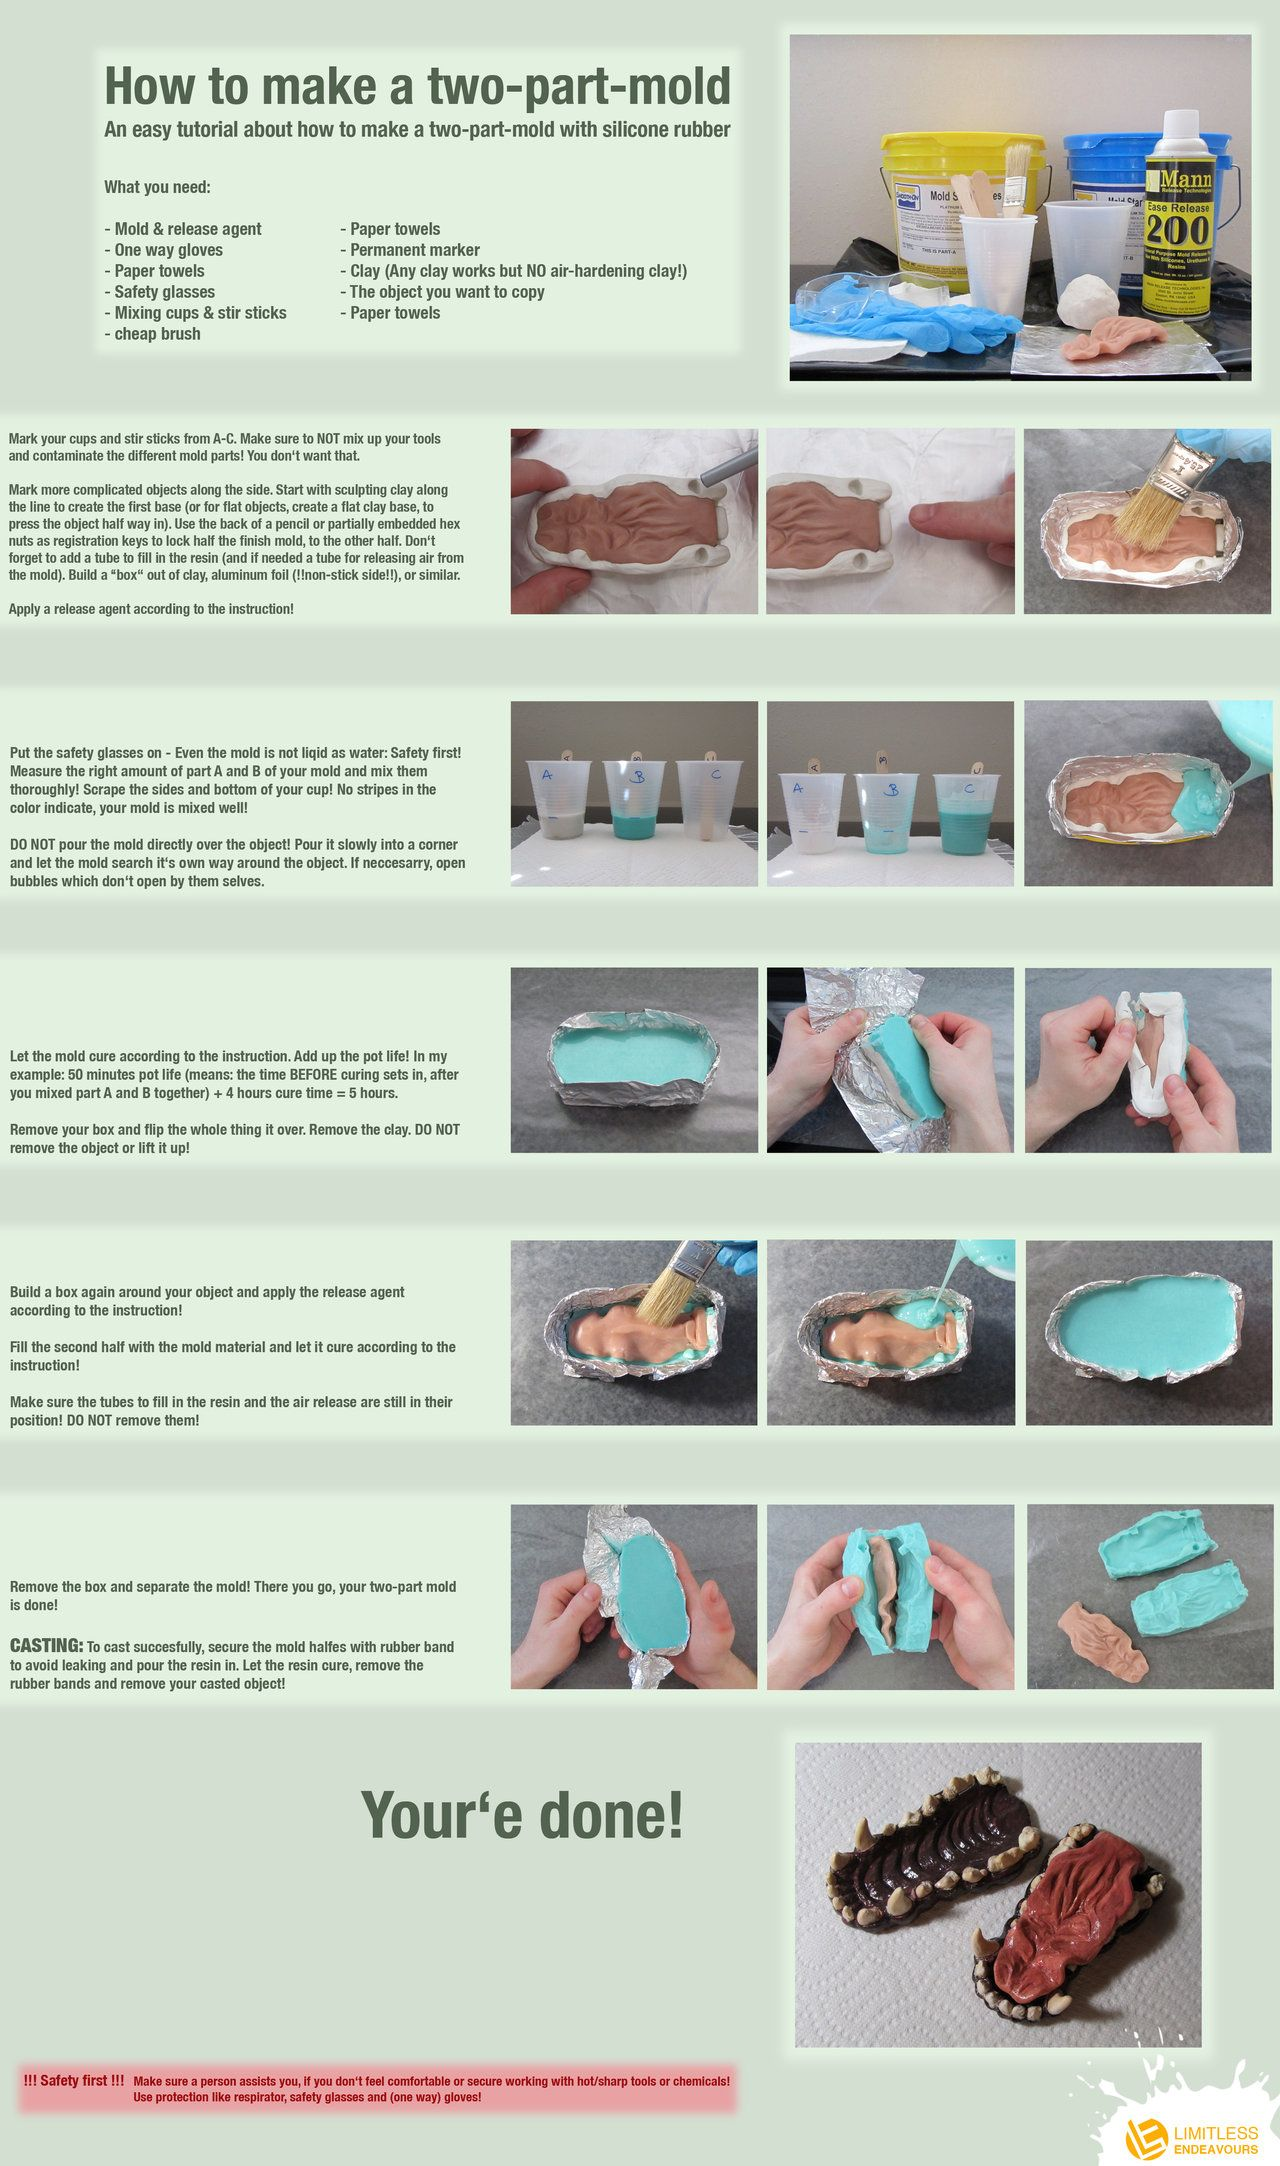 How To Make A Two Part Mold By Limitlessendeavours On Deviantart Diy Silicone Molds Resin Diy Epoxy Resin Crafts